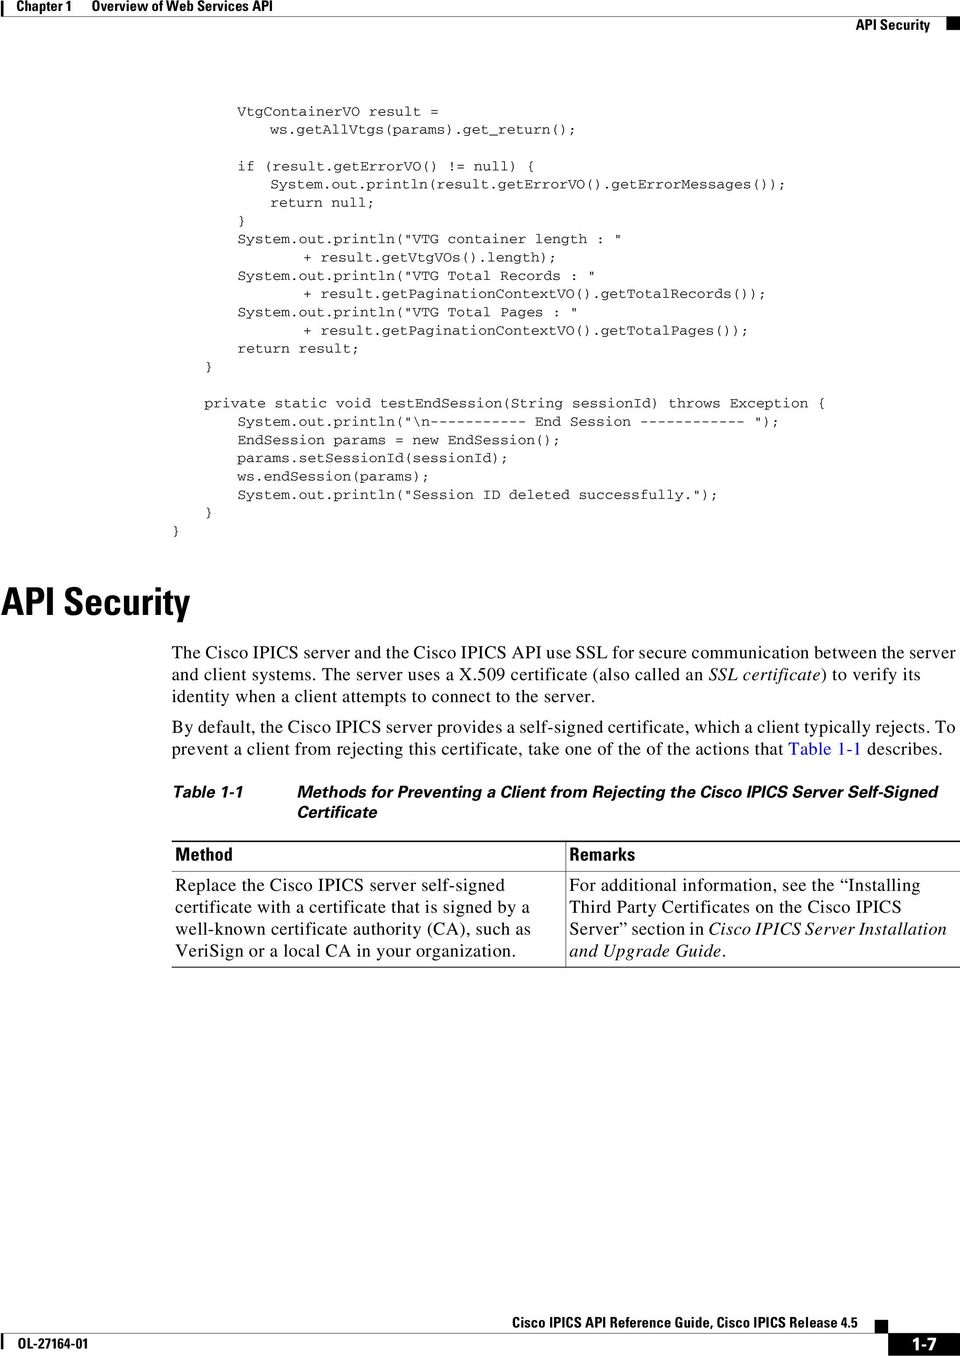 Overview of Web Services API - PDF